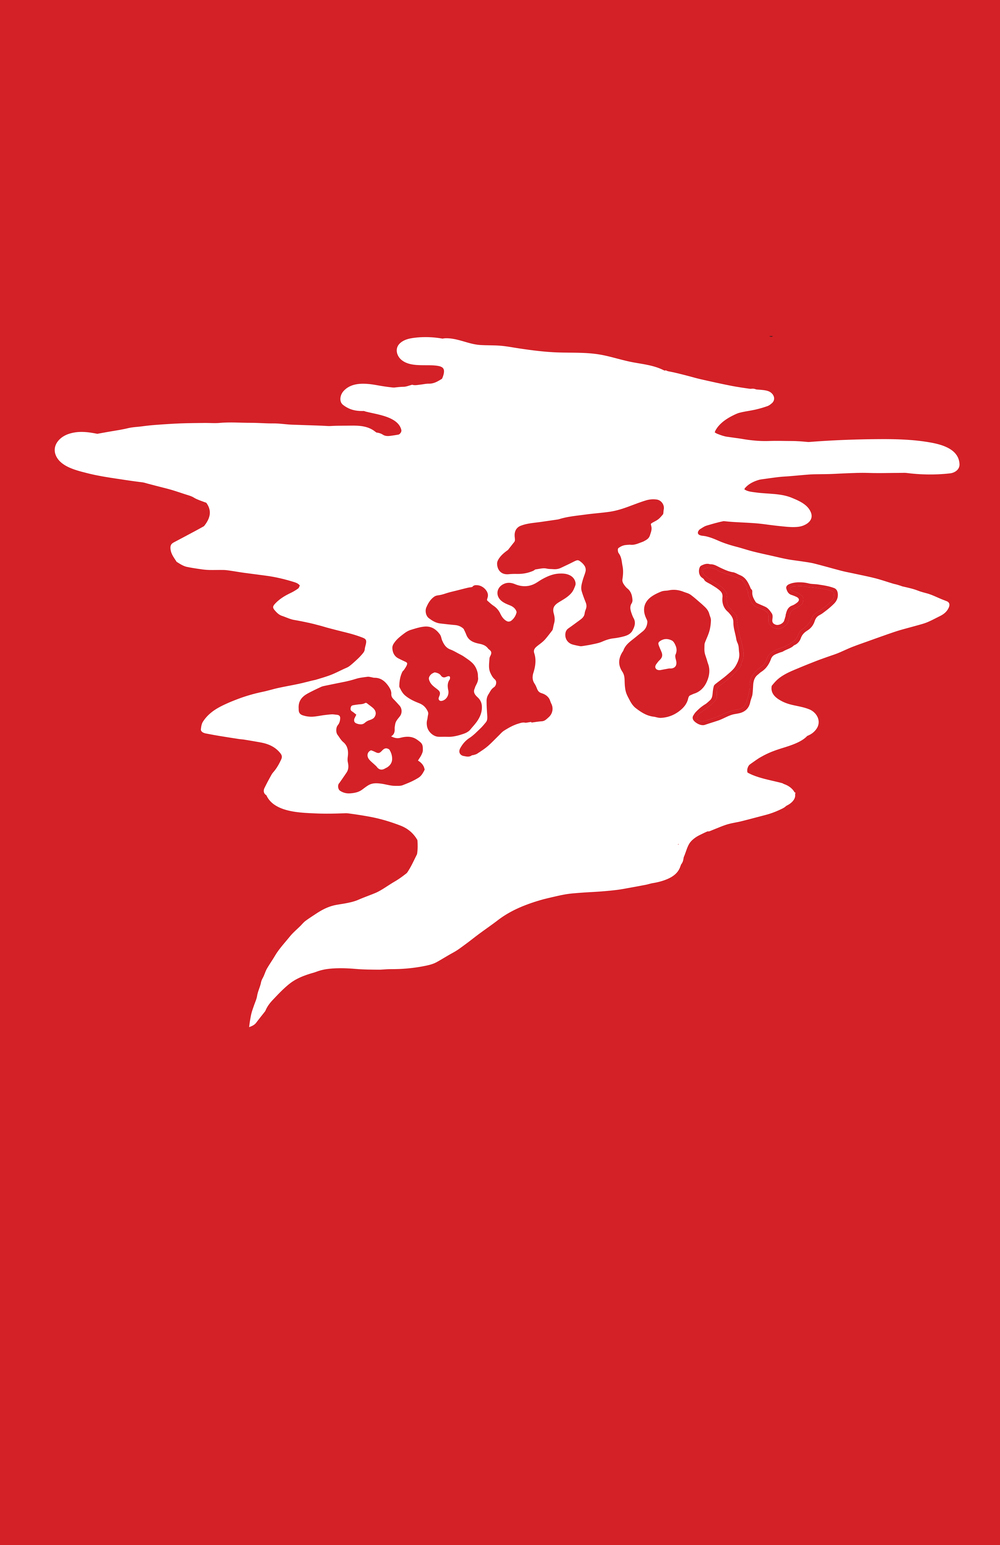 BOYTOY logo and koozie design